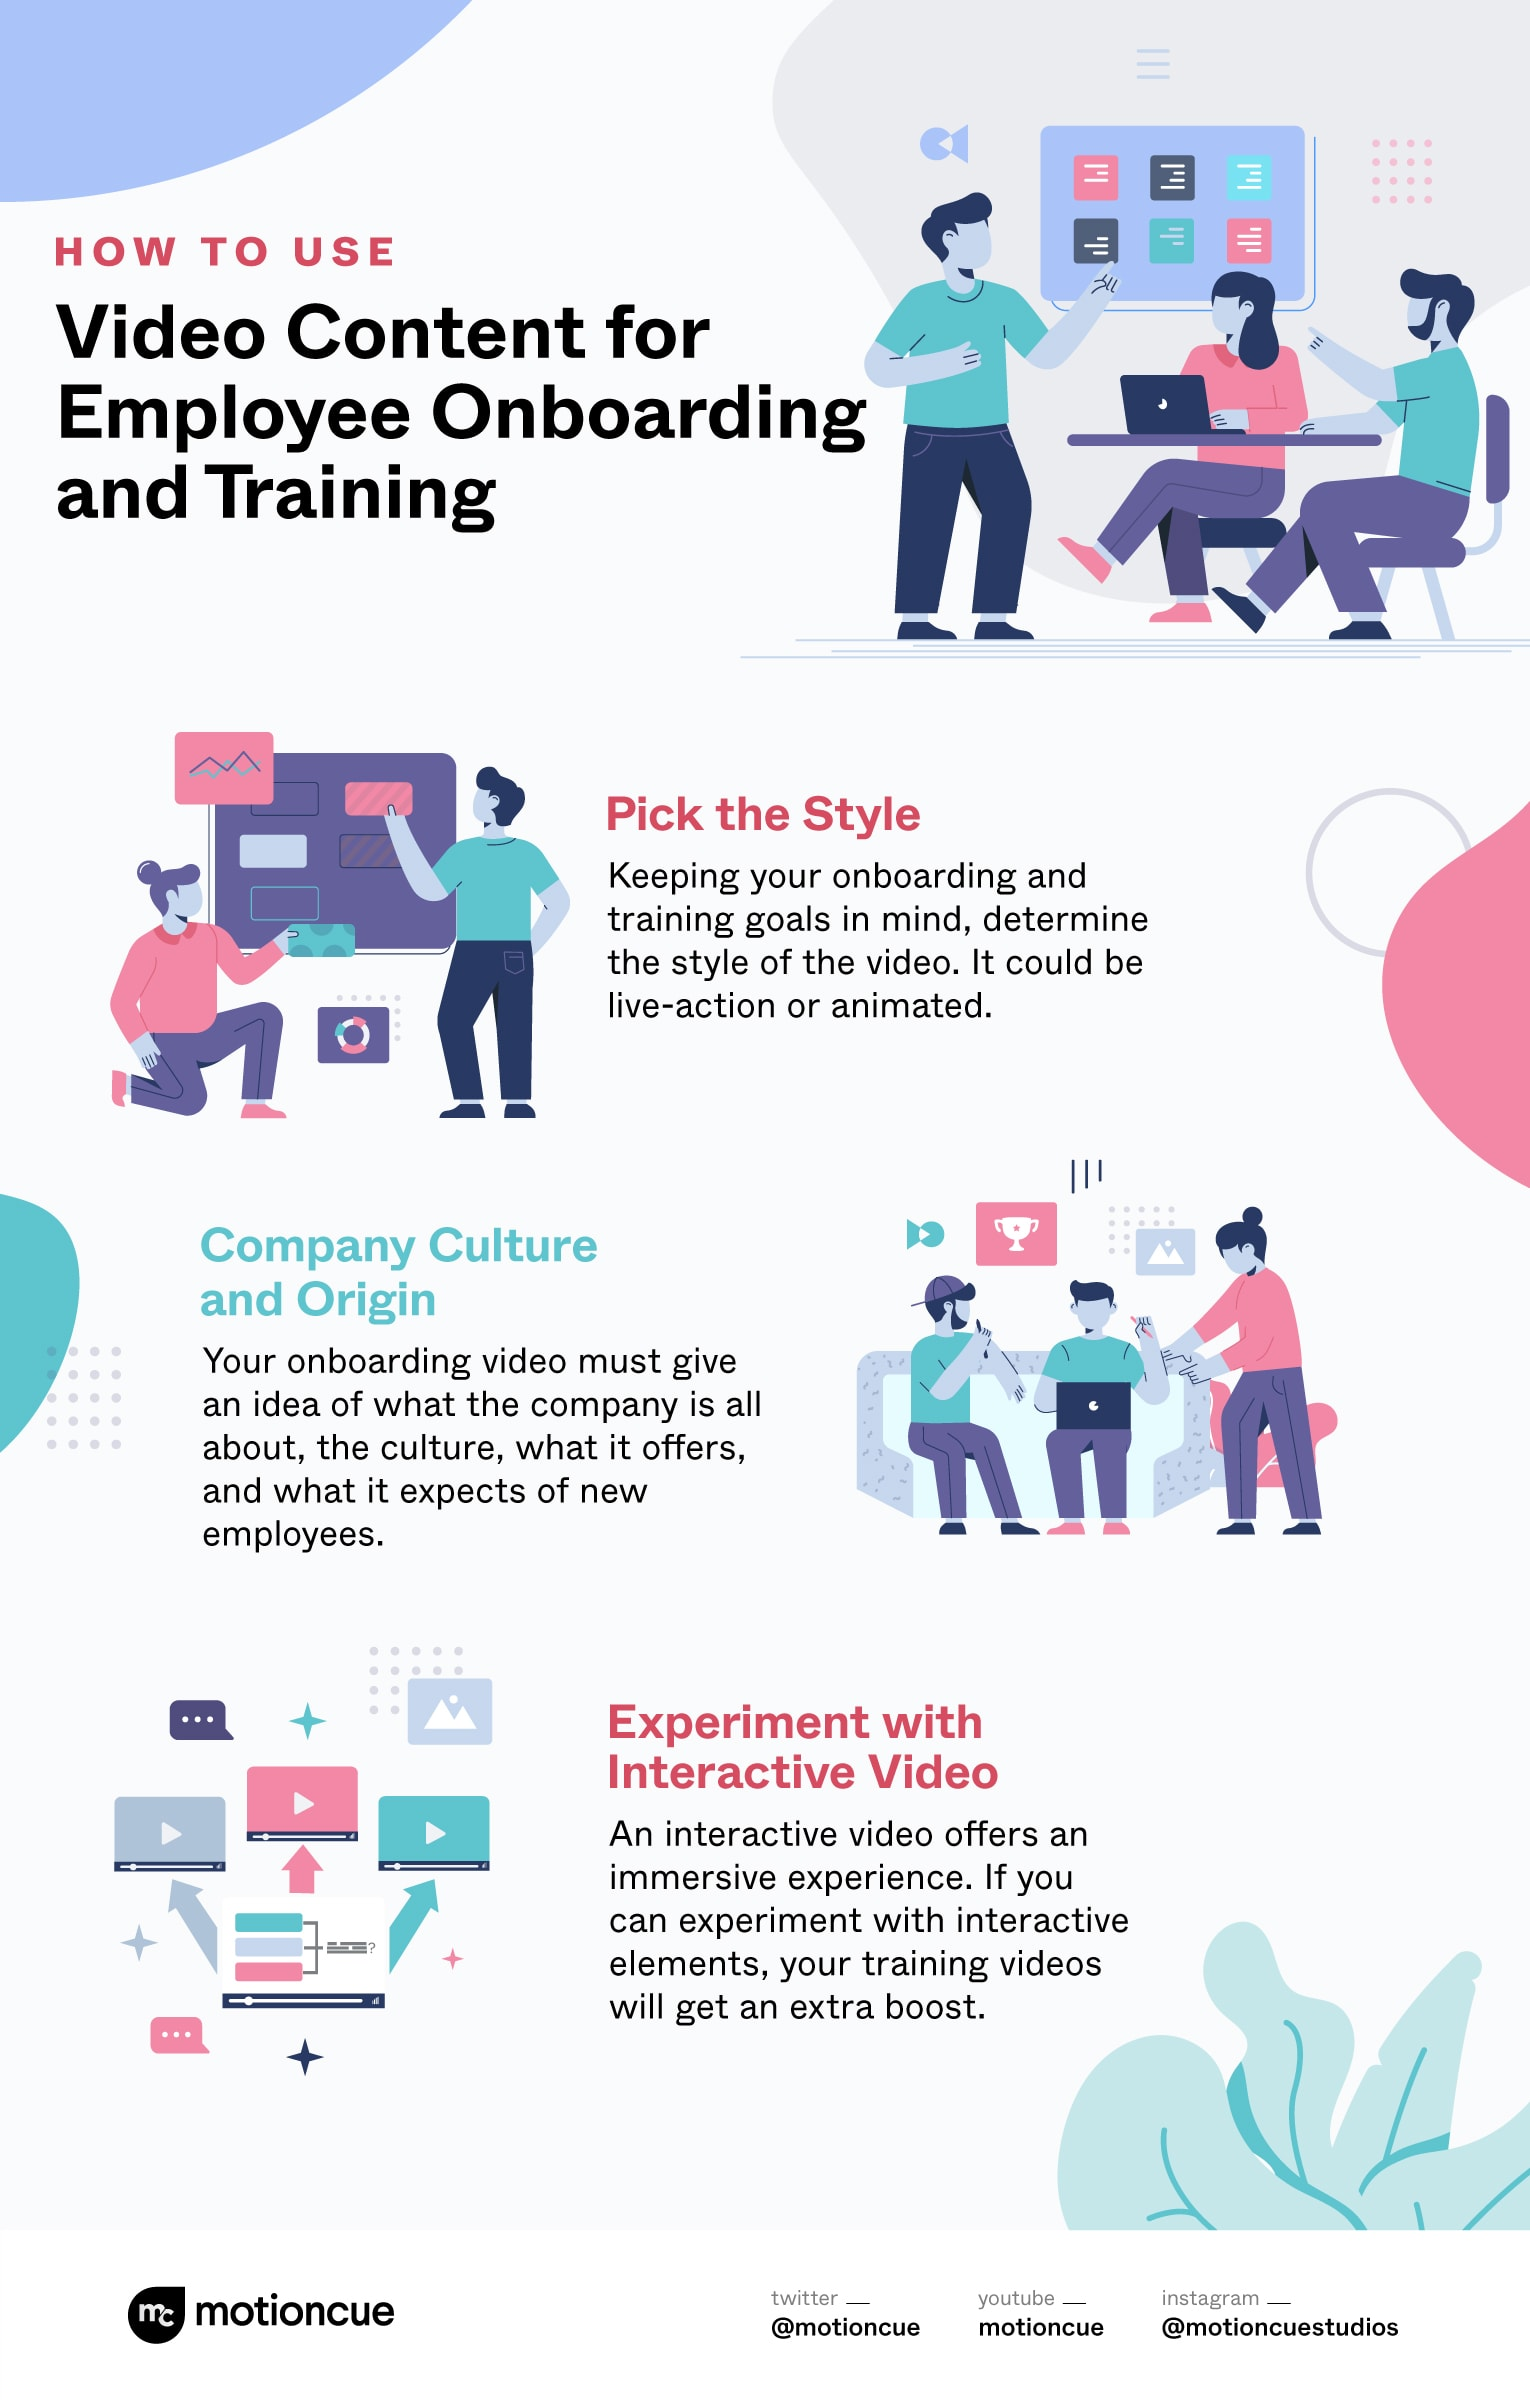 onboarding and training videos-how to use them- Infographic by MotionCue